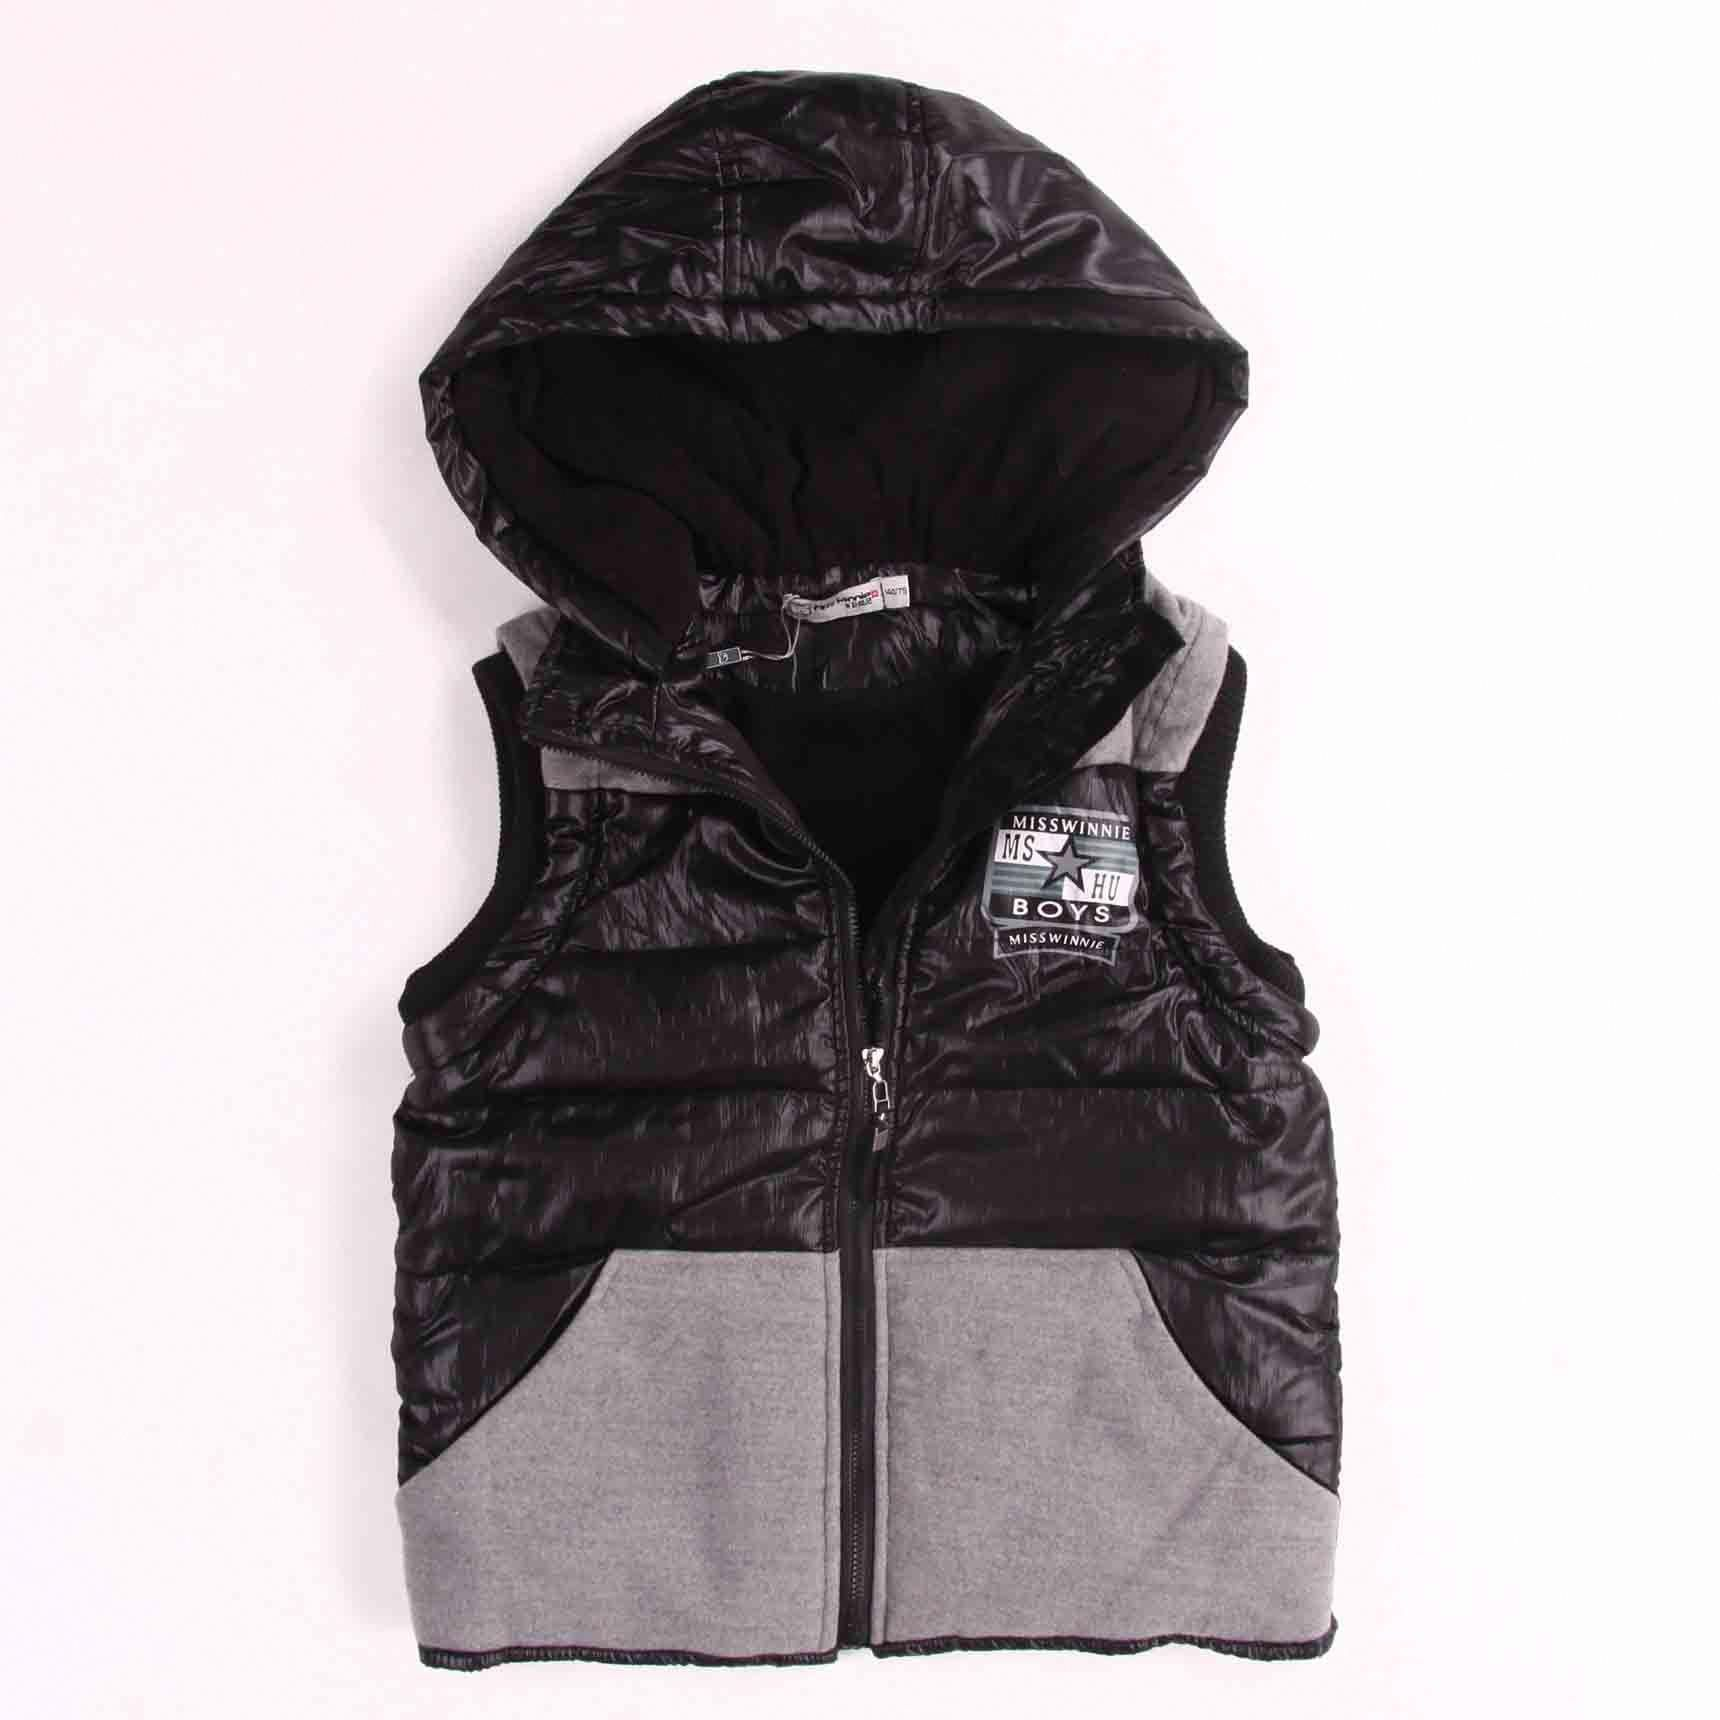 High quality wholesale puffy hooded boys vests from China kids clothes  supplier.  KidsClothingSizeChart 2993fd654